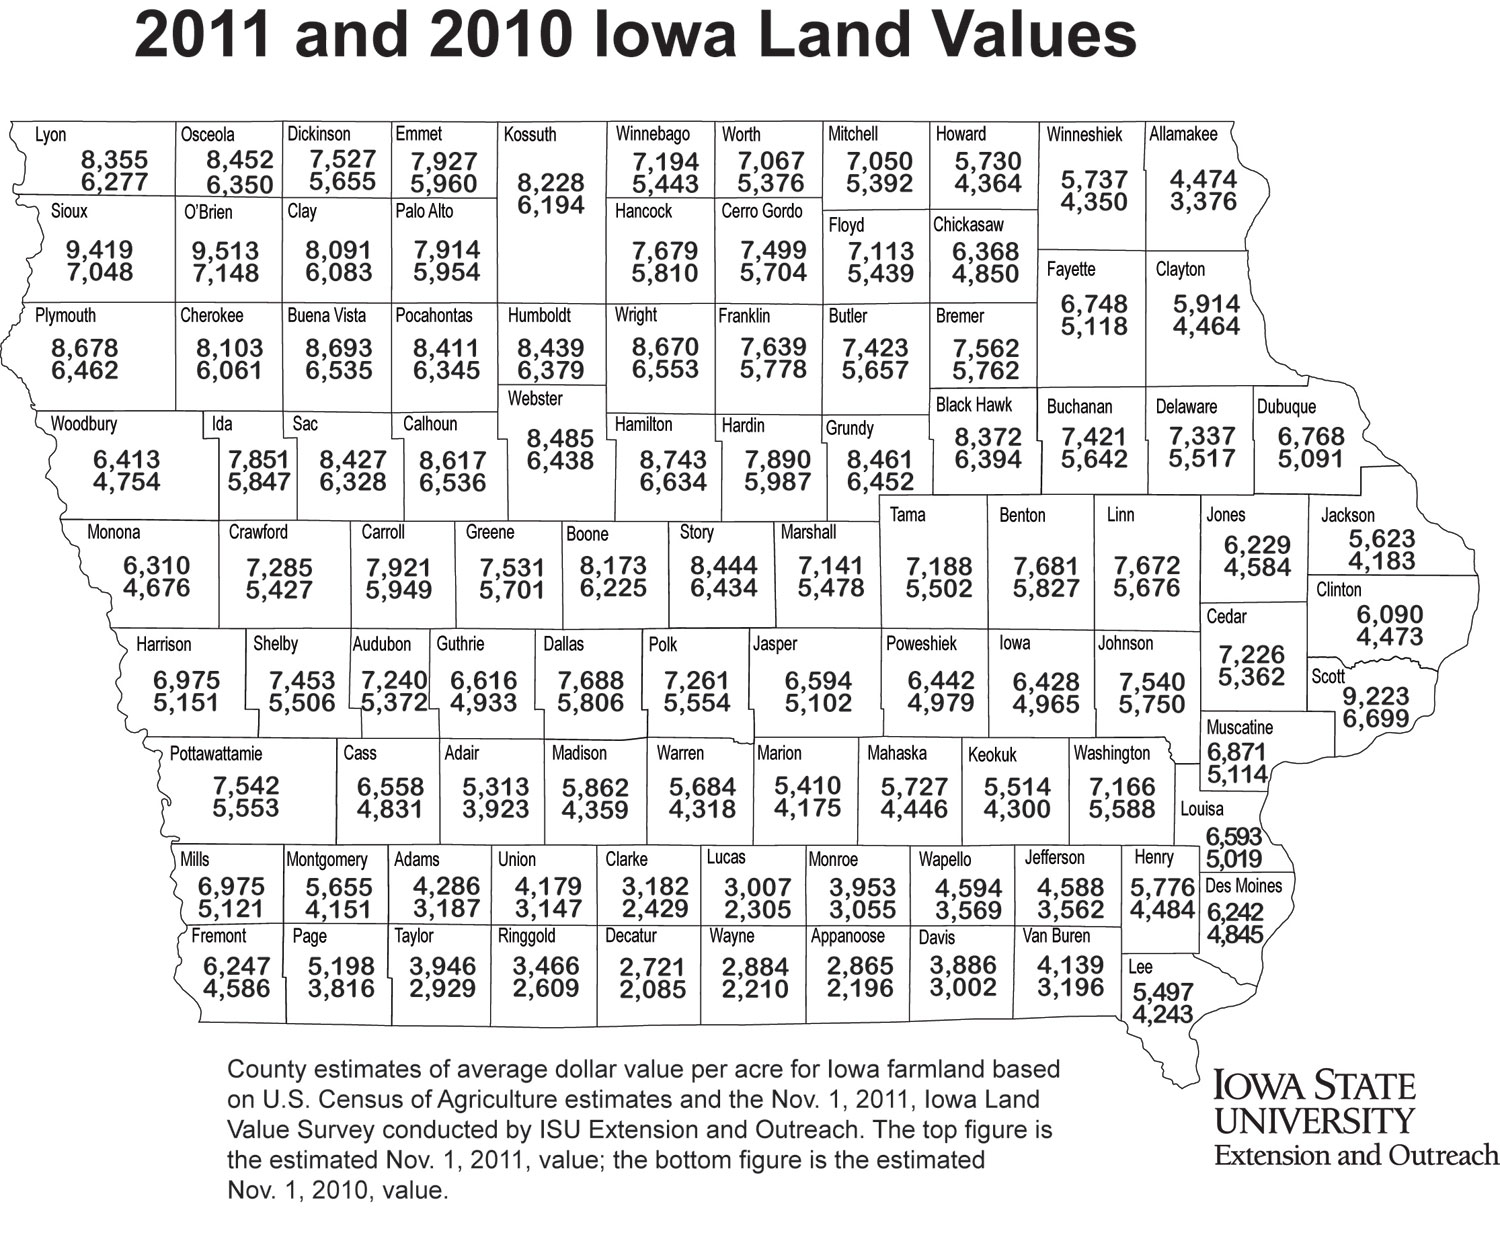 Iowa Land Value Survey Results Iowa State University Extension and